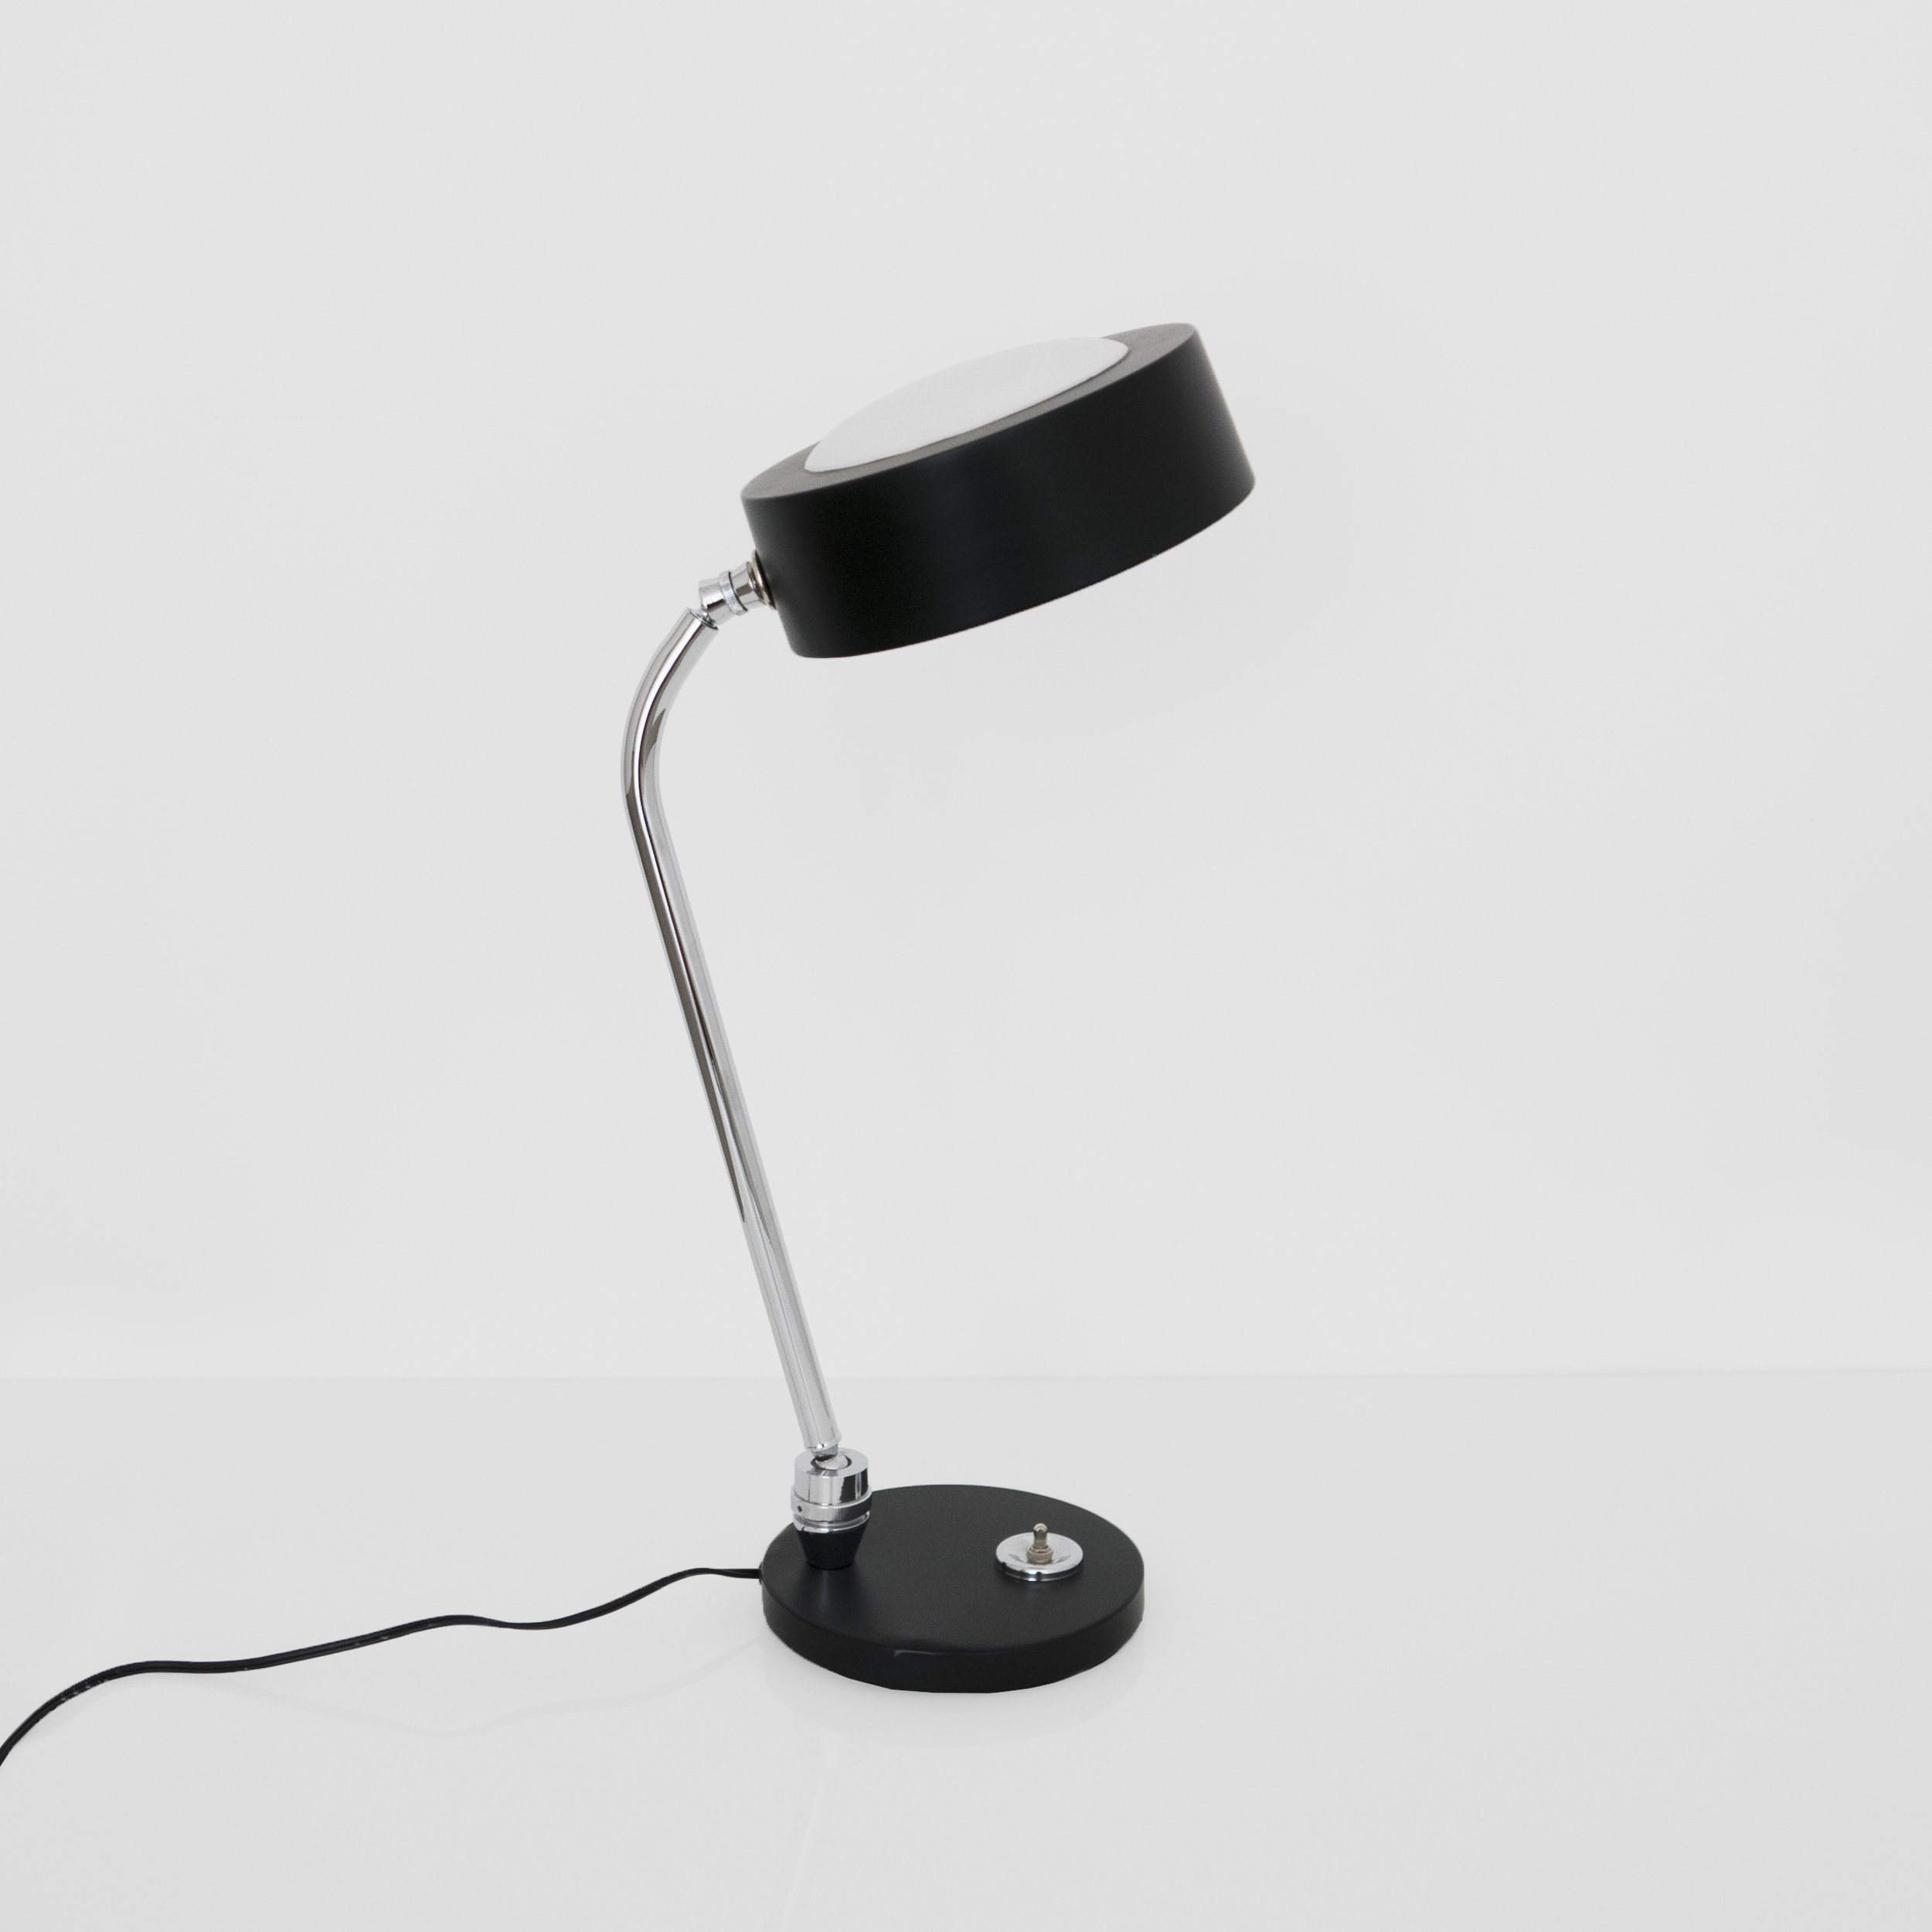 charlotte perriand vintage modernist table Lamp $2,500